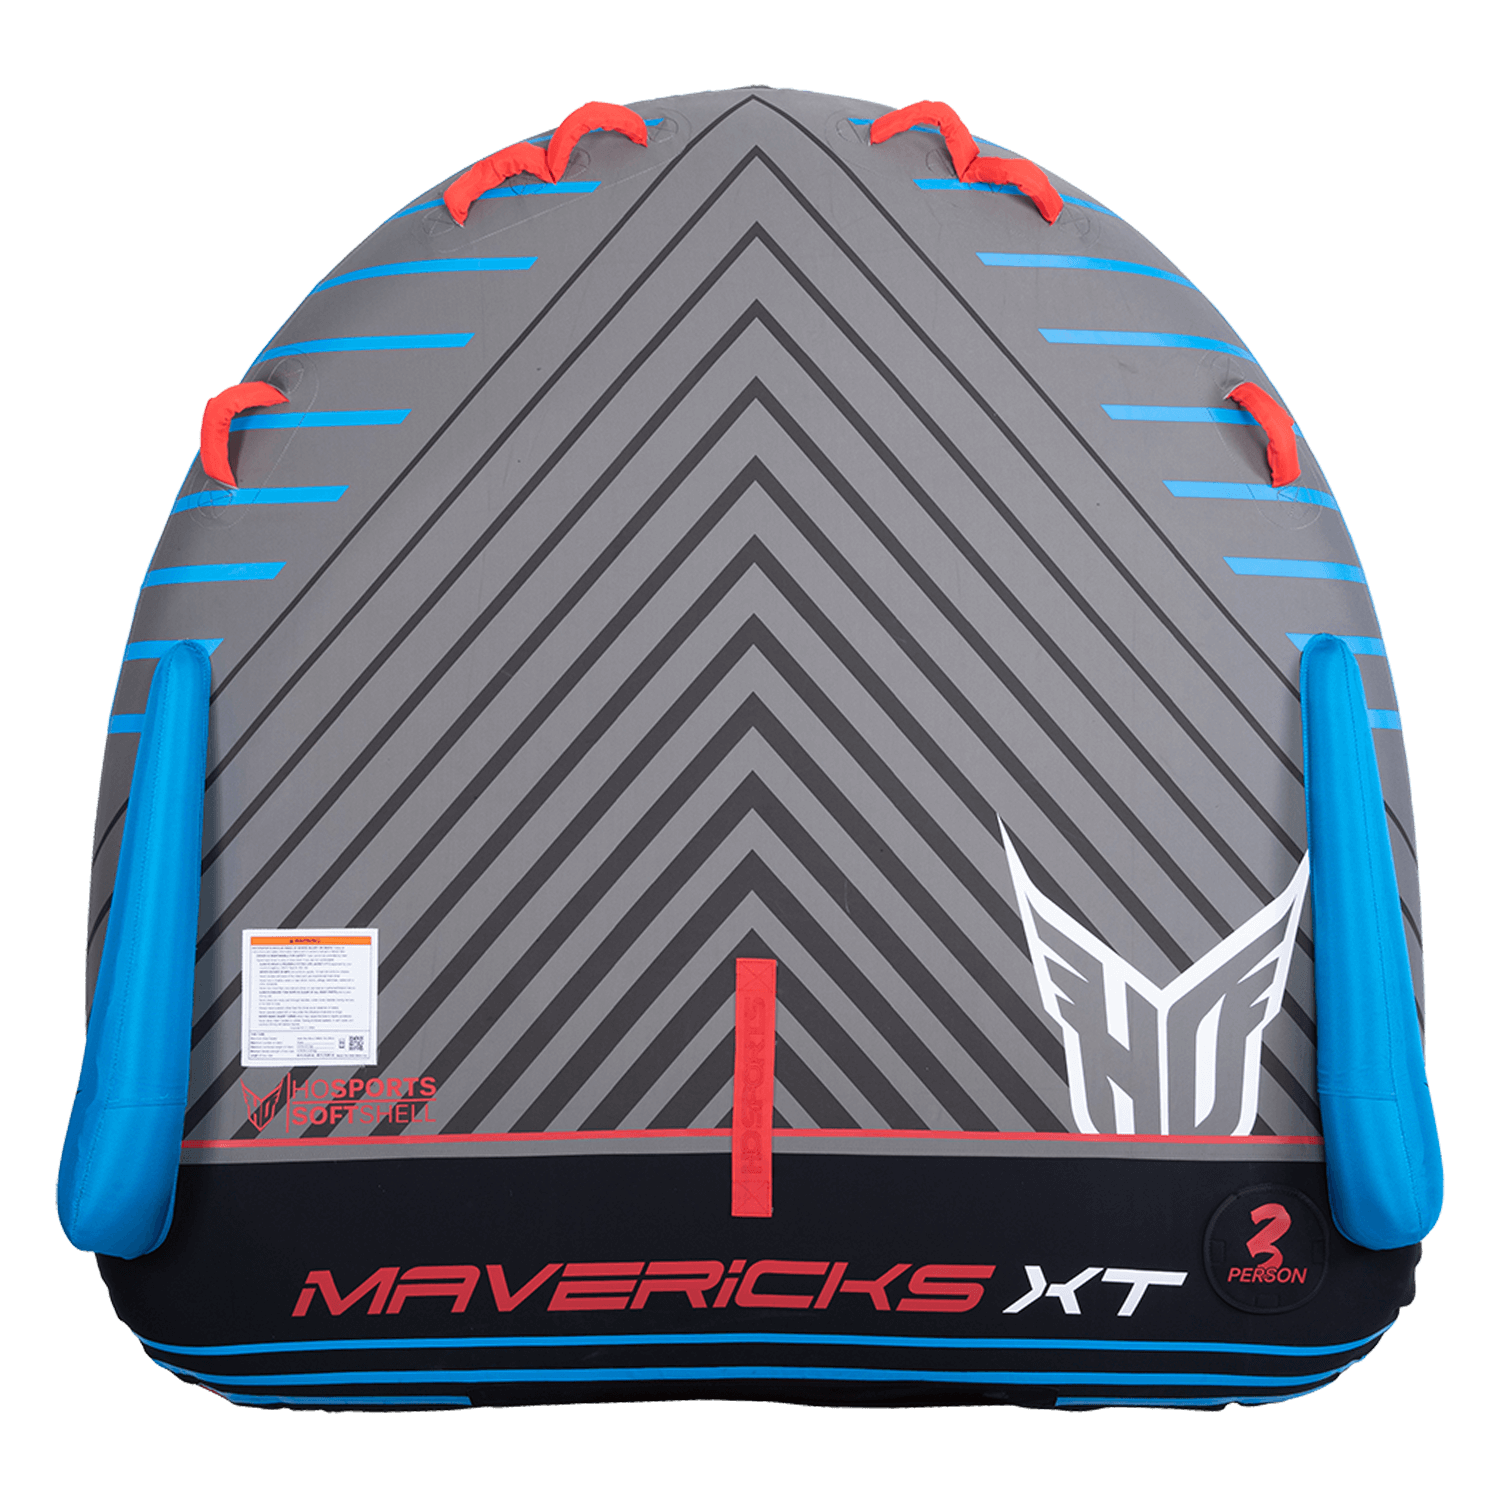 HO Sports Mavericks 3-XT | 2021